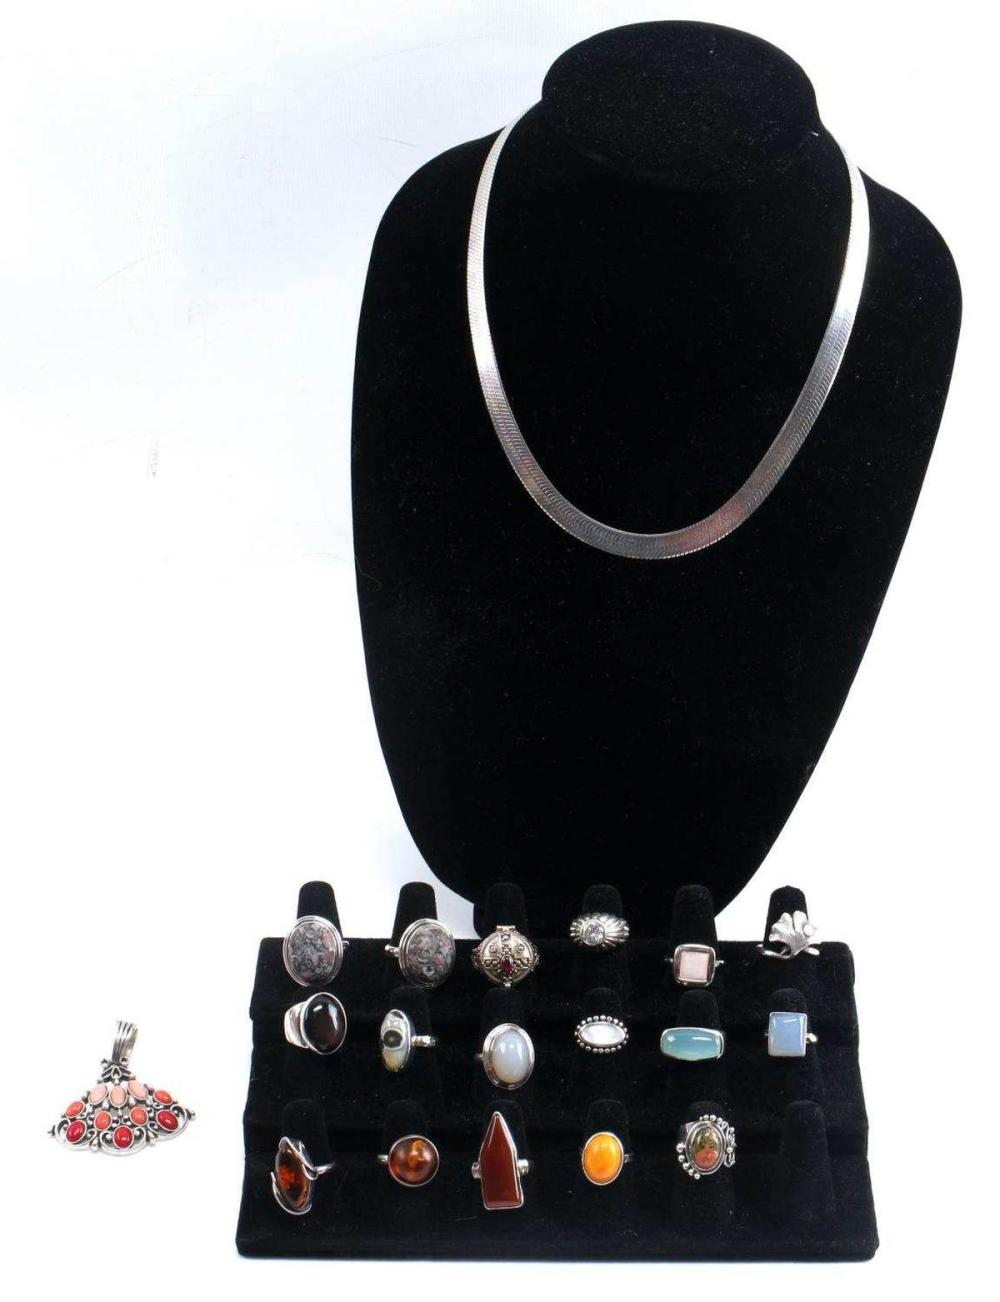 SILVER AND GEMSTONE RING PENDANT JEWELRY LOT